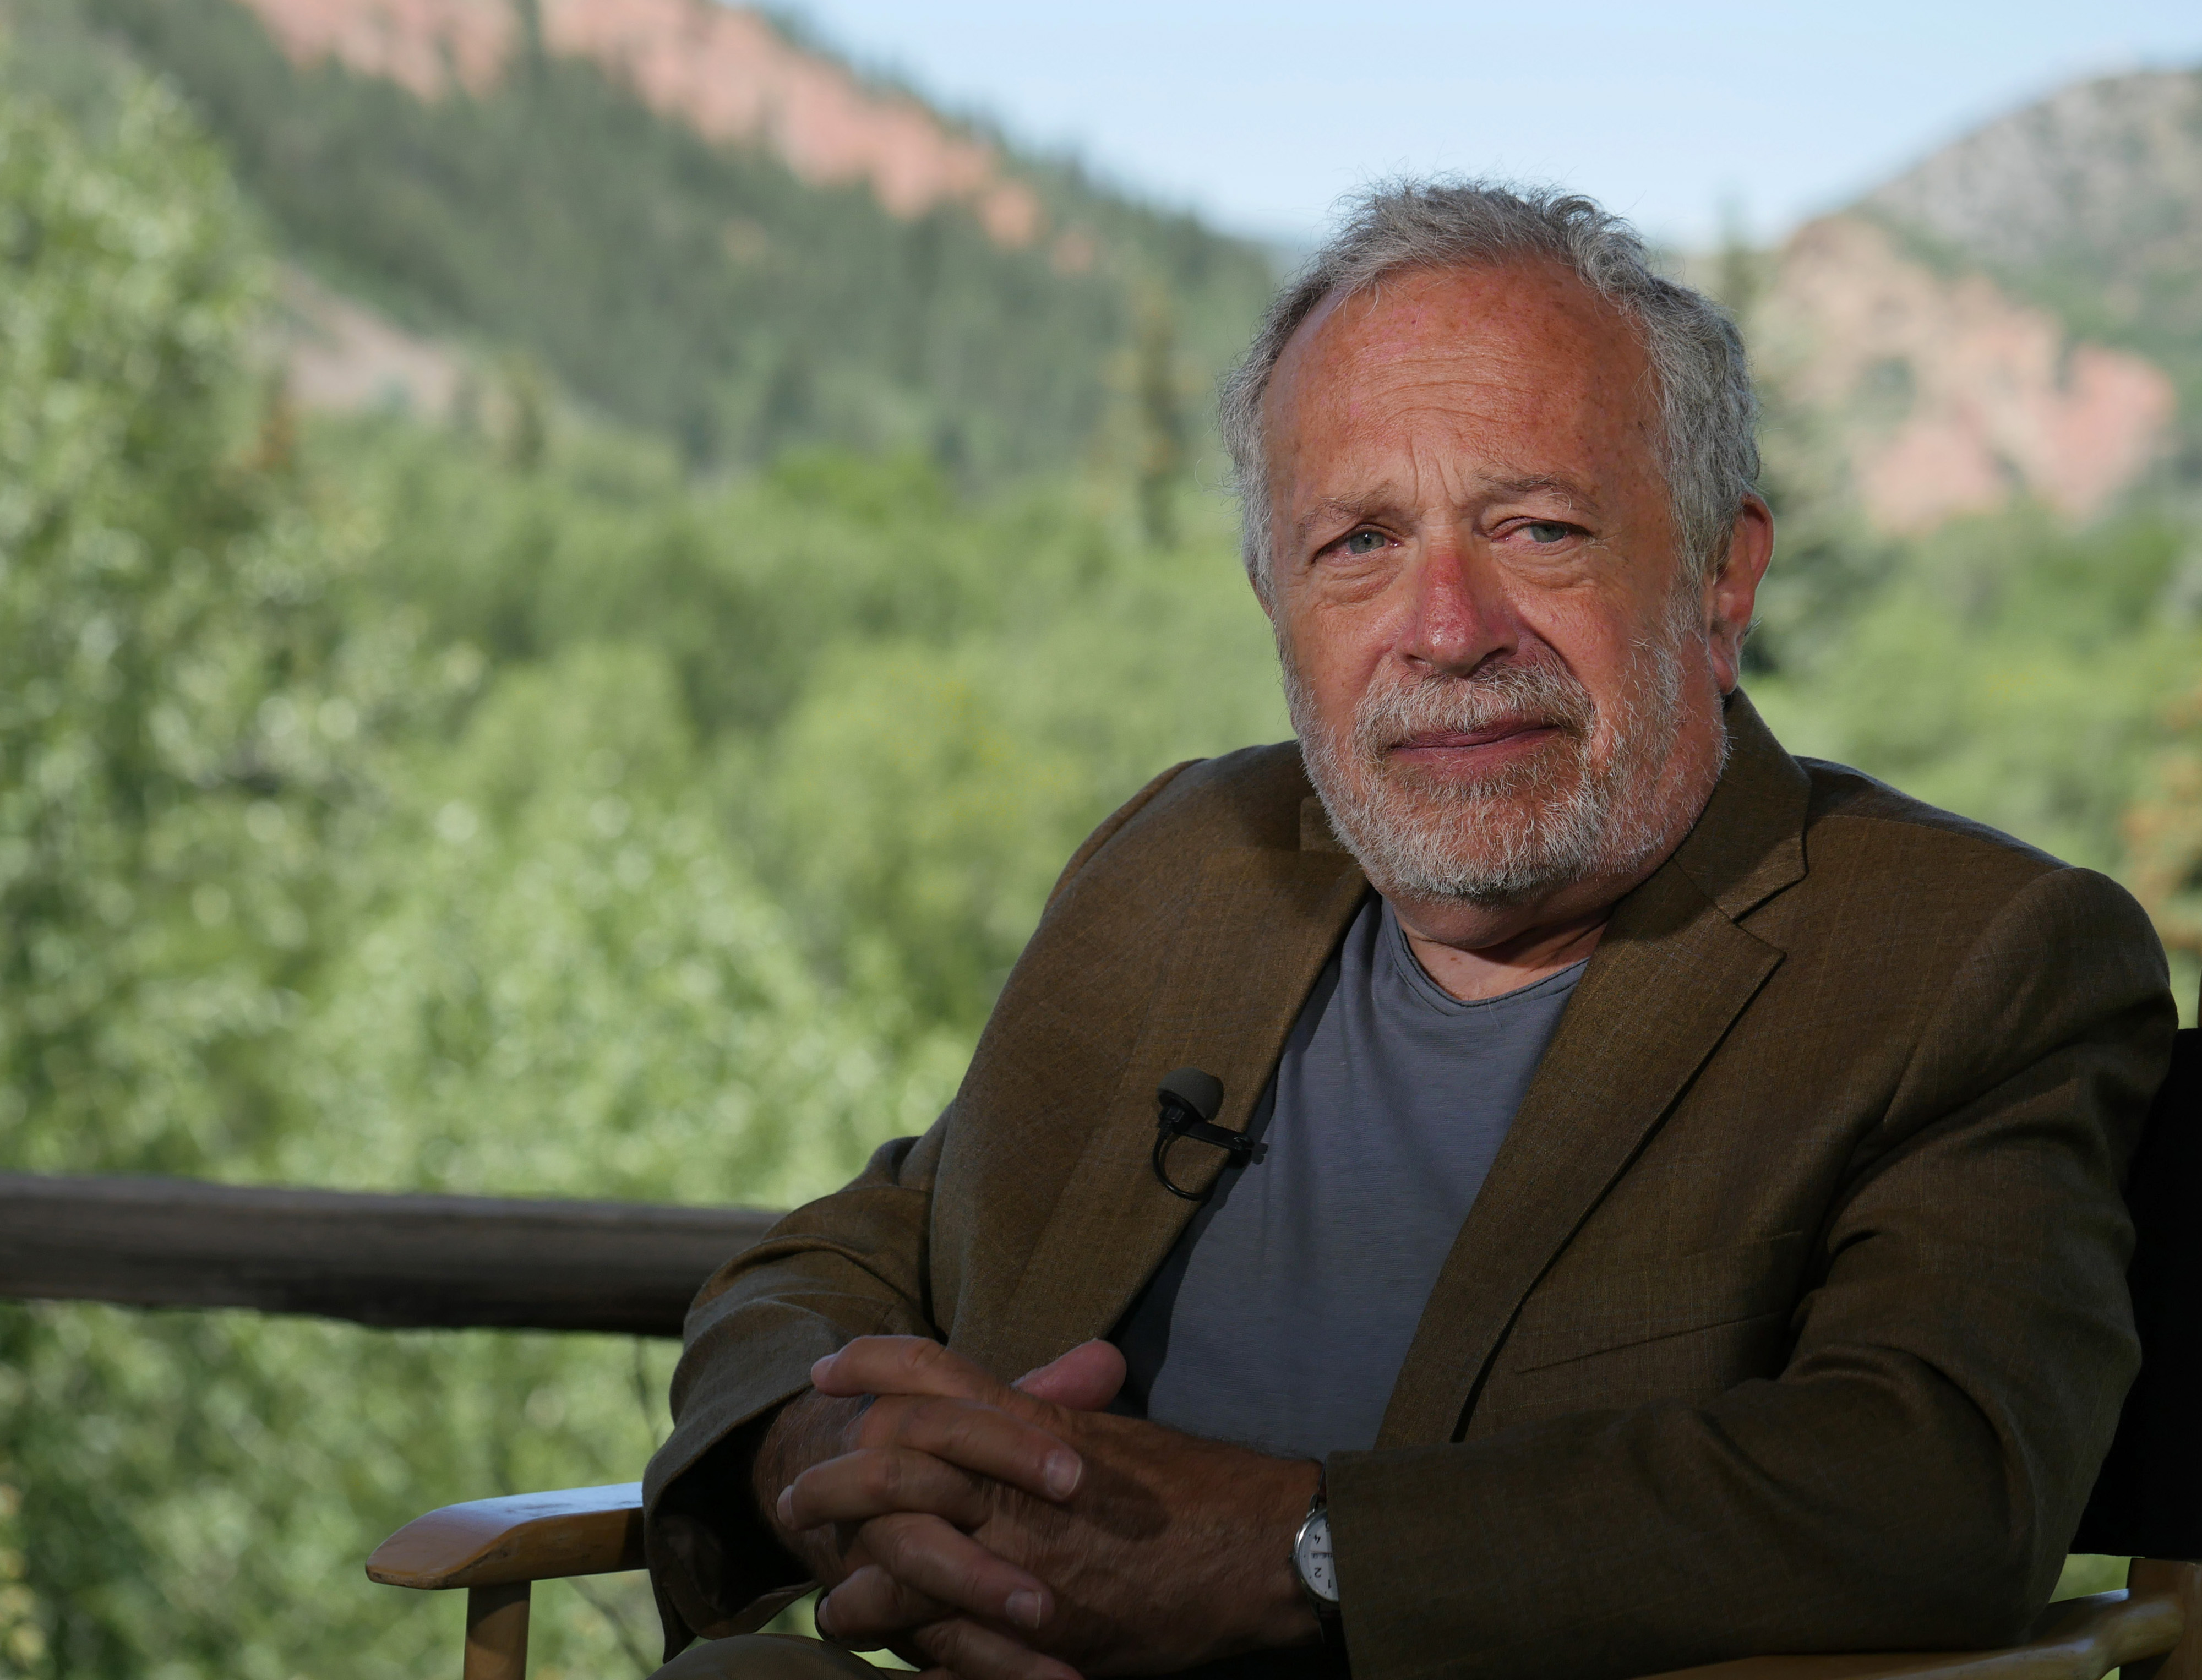 Robert Reich, former U.S. Labor Secretary, listens to a question during a Bloomberg Television interview at the Aspen Ideas Festival in Aspen, Colorado on June 30, 2014.